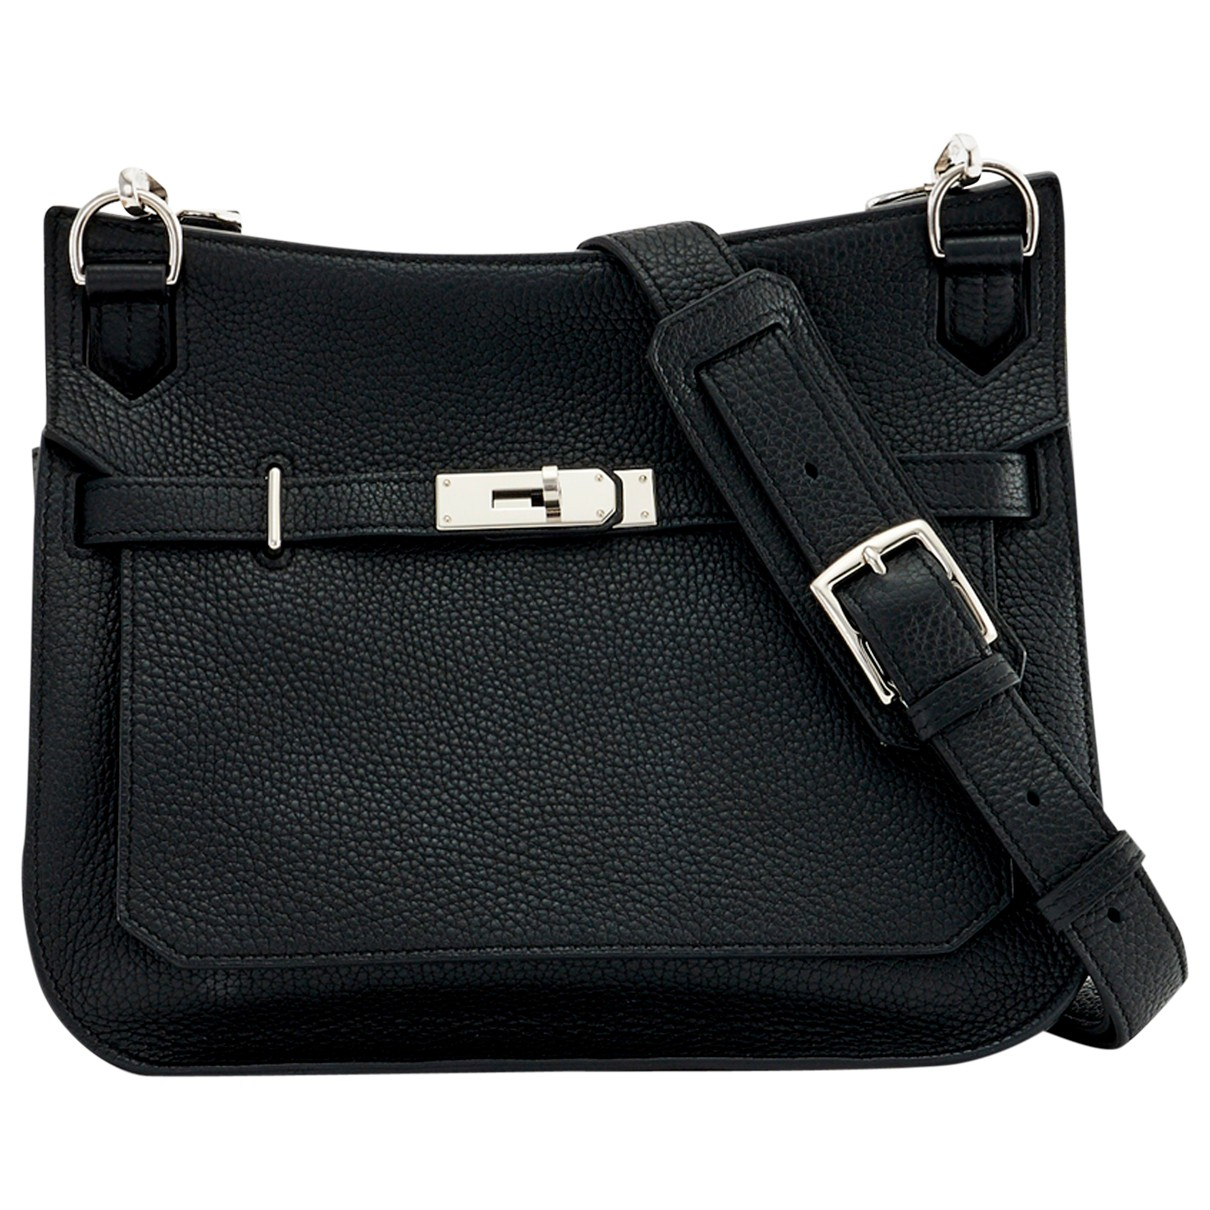 Hermès Jypsiere Black Leather handbag for Women \N